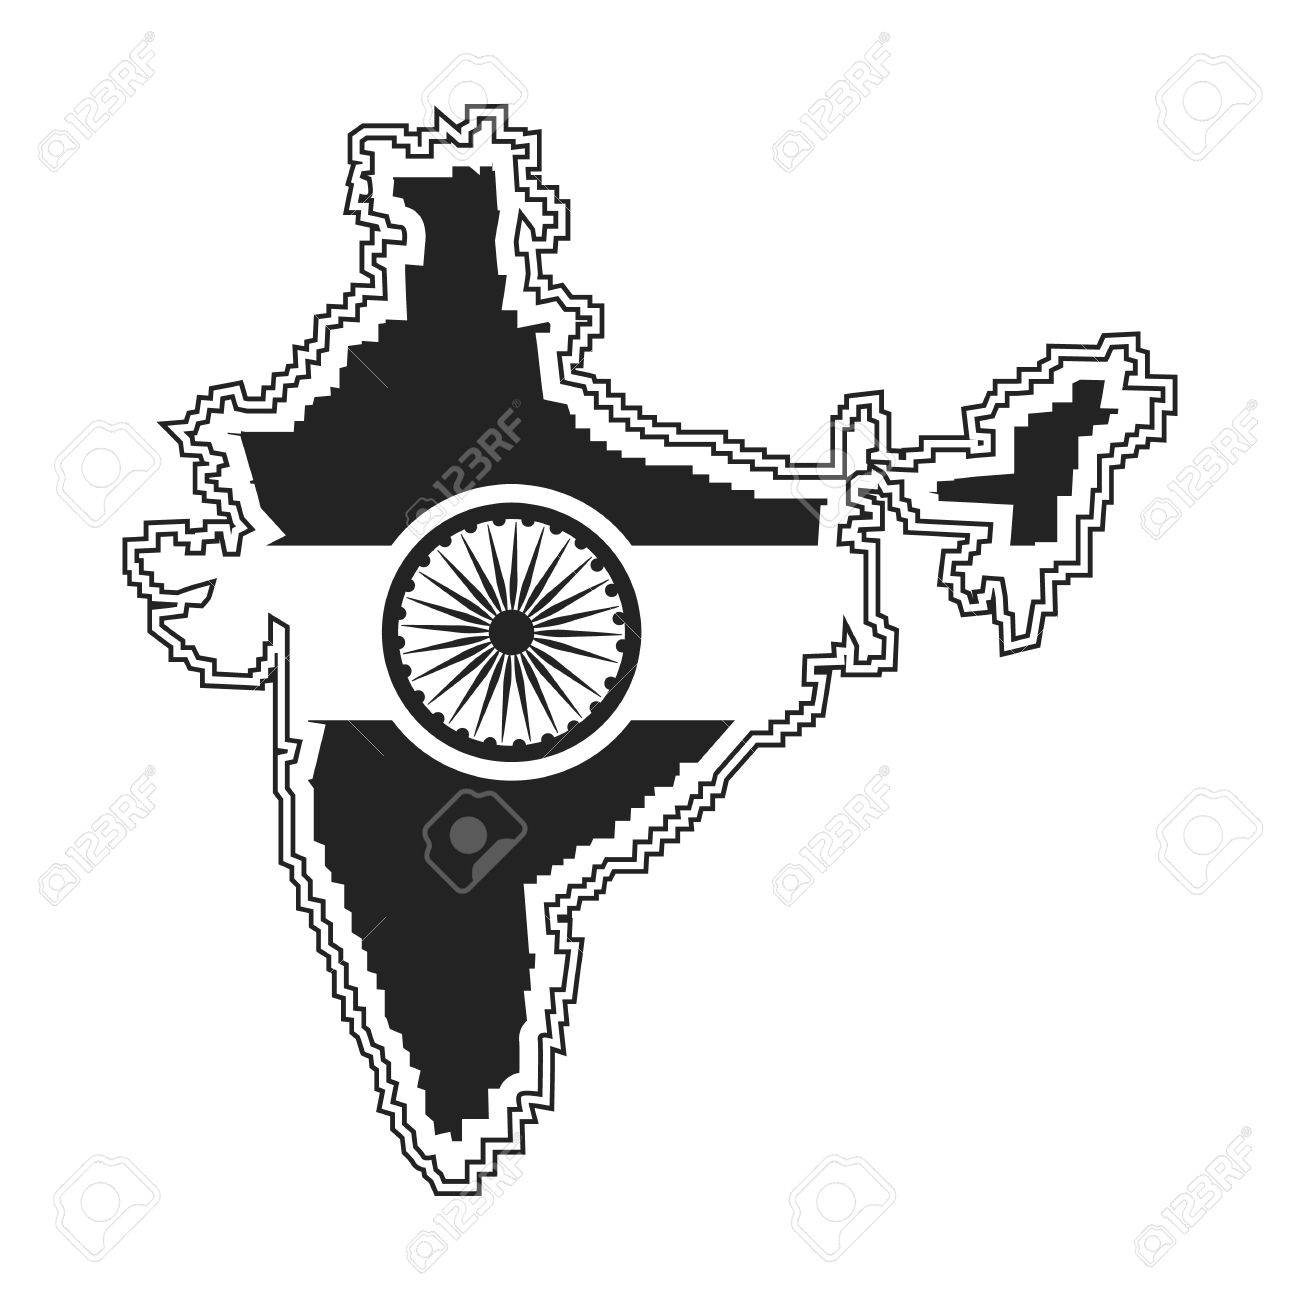 Indian Territory Icon In Black Style Isolated On White Background Royalty Free Cliparts Vectors And Stock Illustration Image 67670554